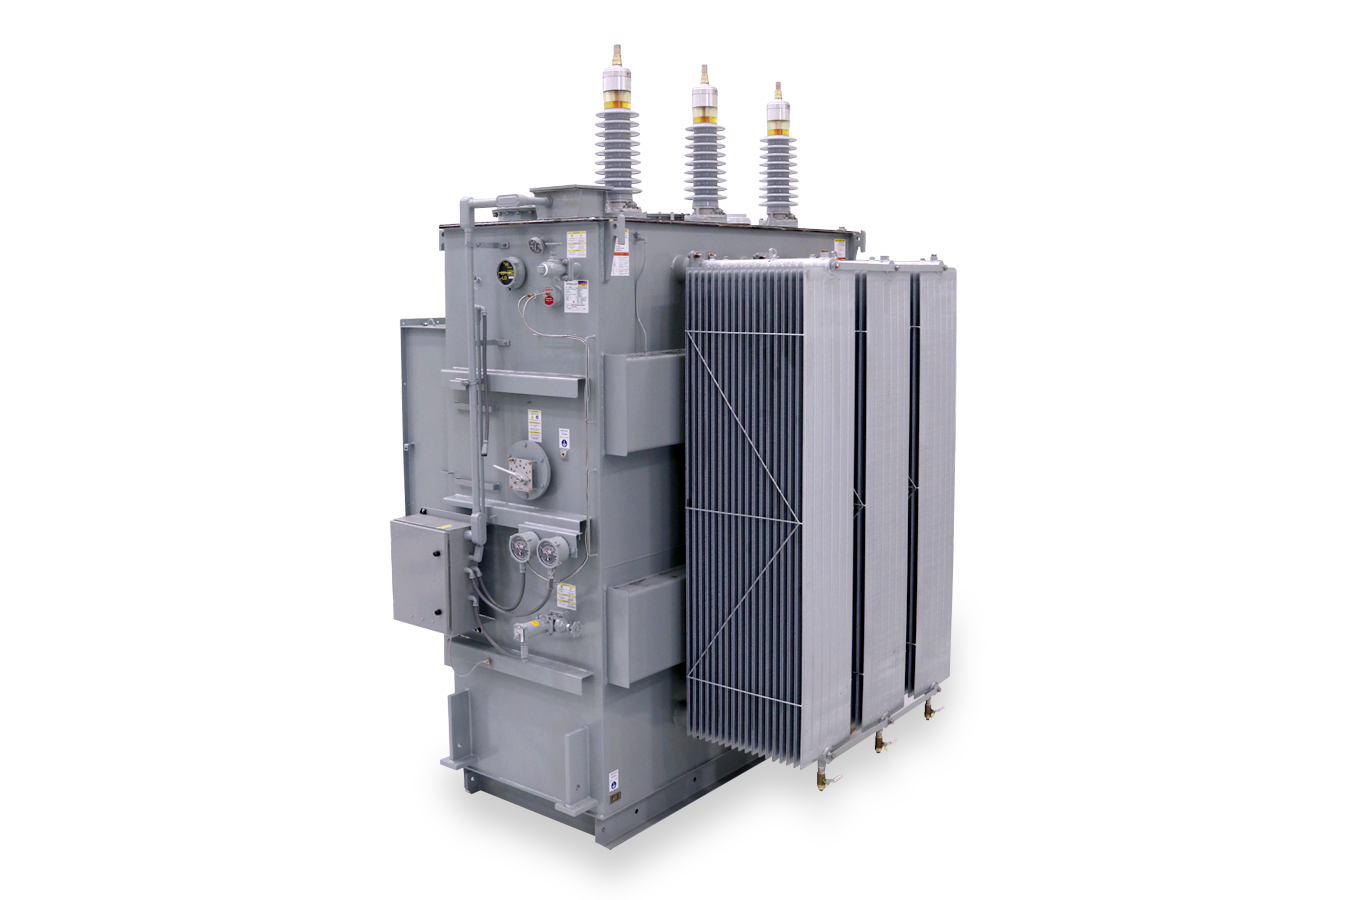 Static Excitation Transformers - Niagara Transformer